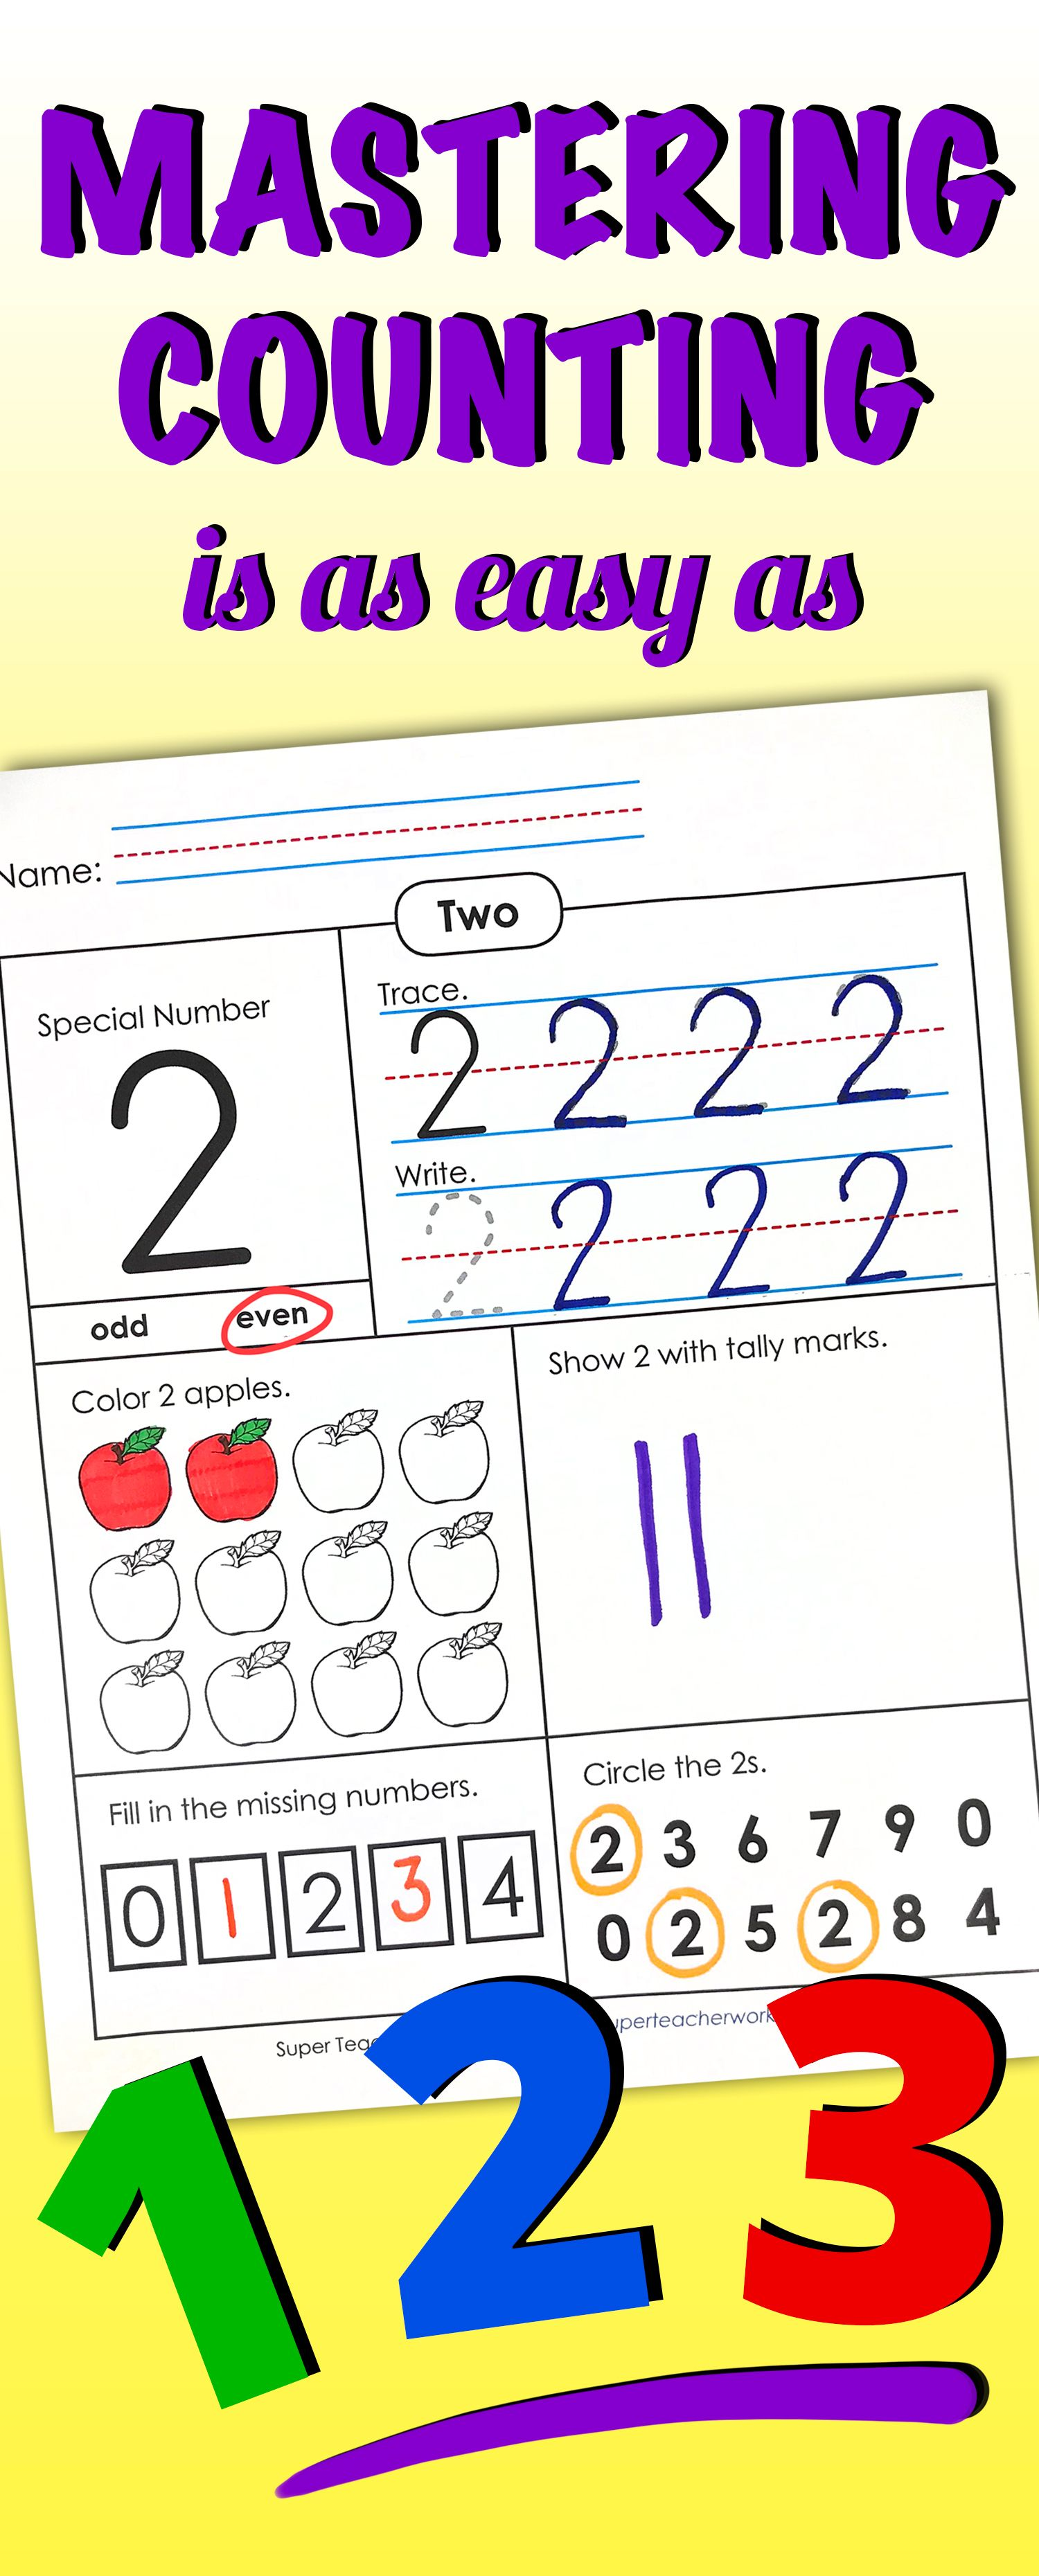 Practice Counting With Basiccounting Worksheets Activities And